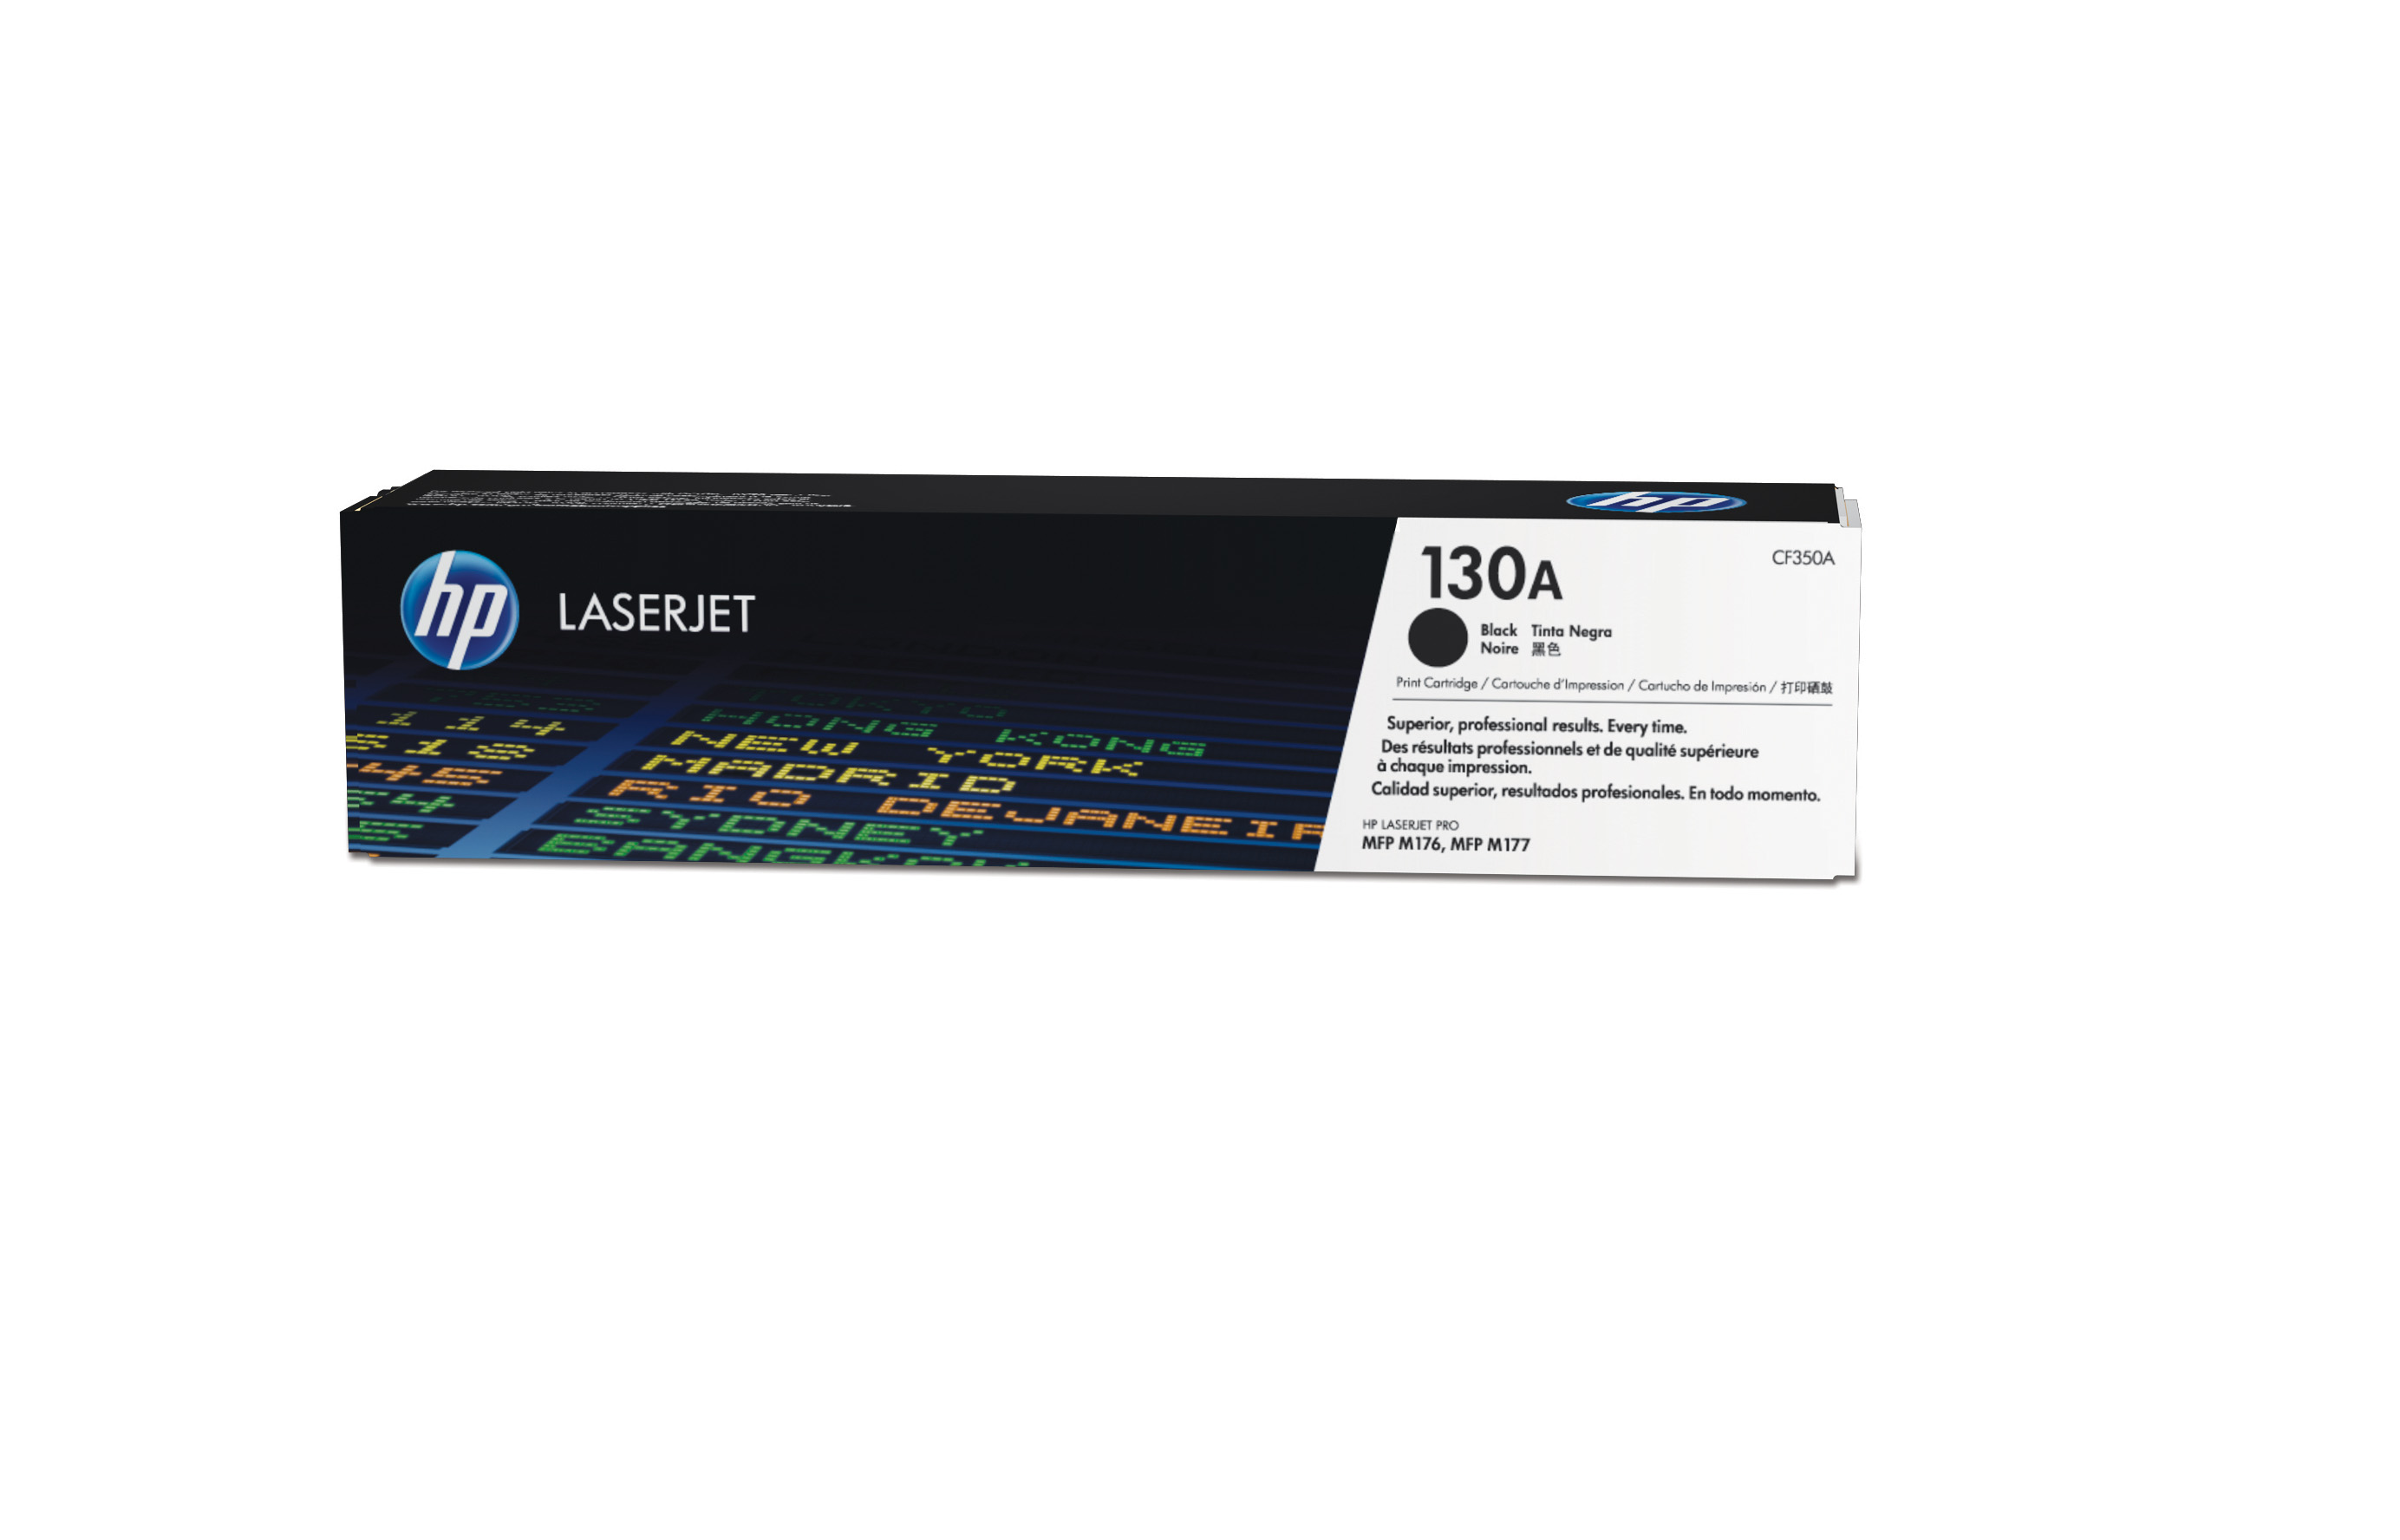 HP 130A Black Toner Cartridge CF350A